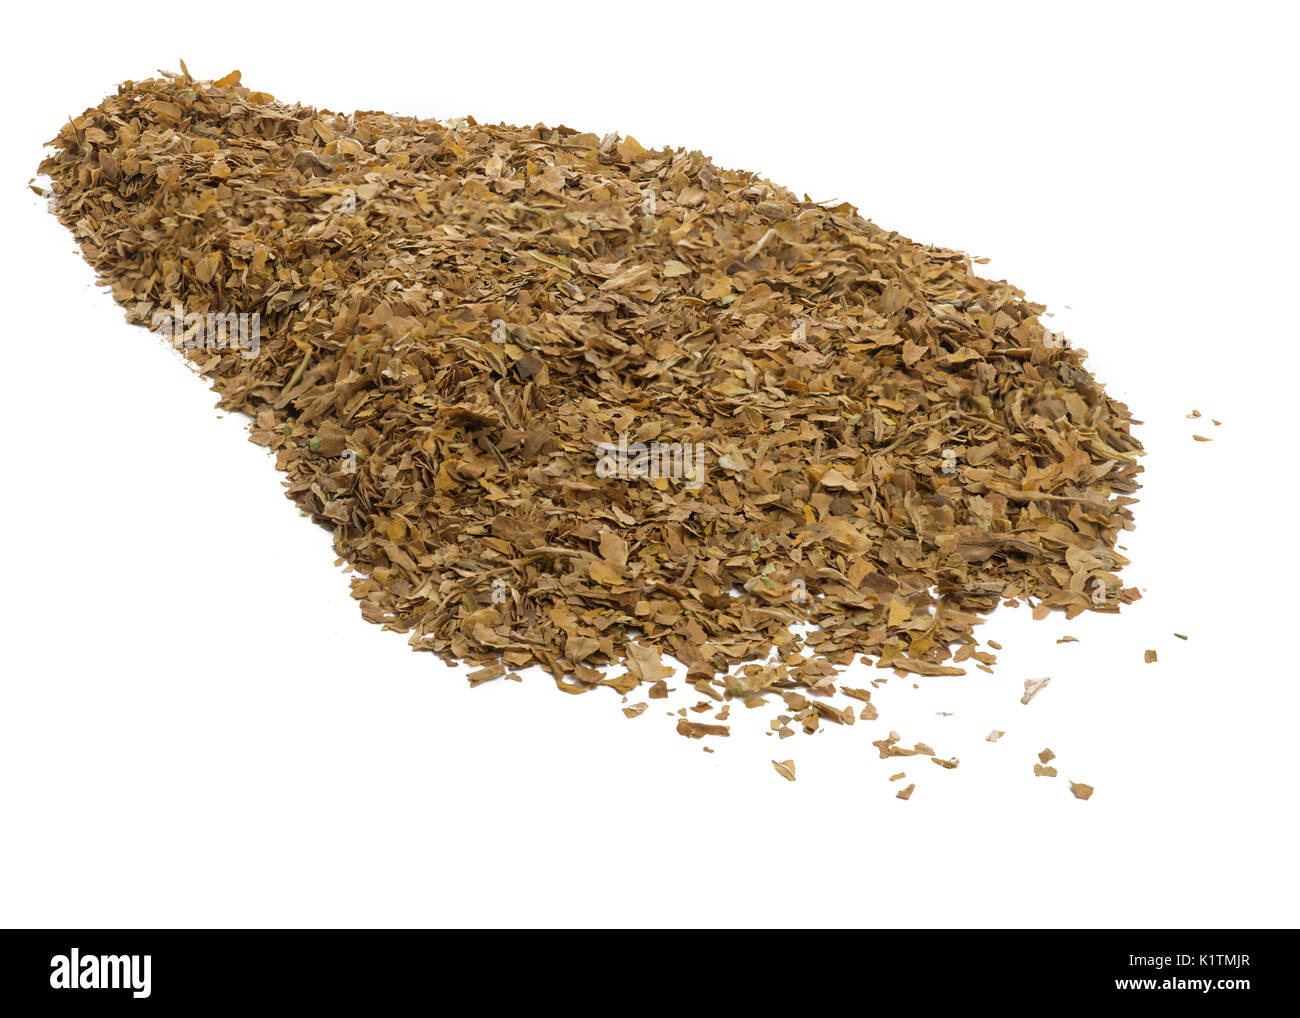 close up of unprocessed tobacco leaves on a white isolated background - Stock Image